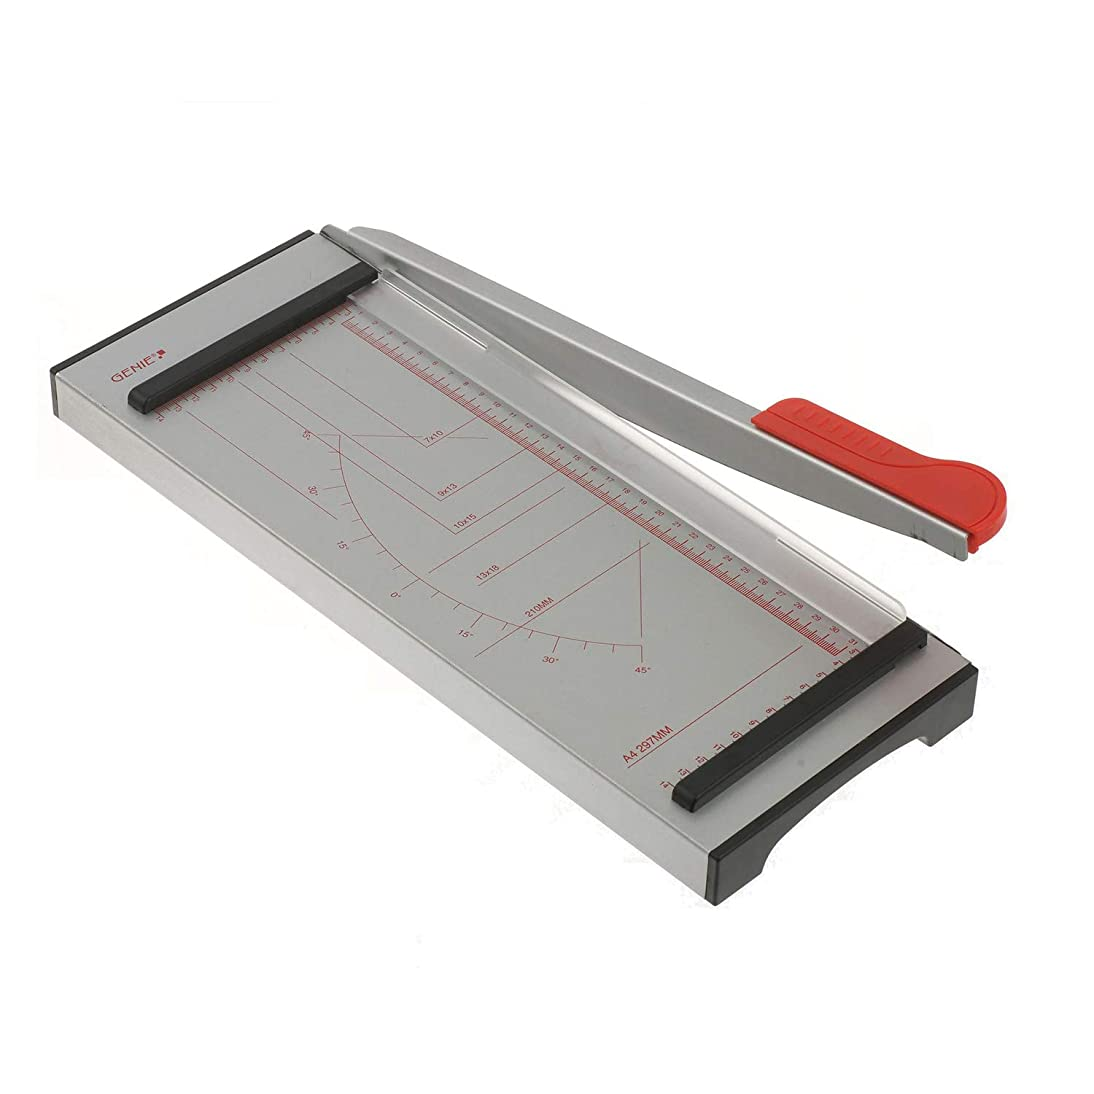 Genie GH 40 Paper Guillotine for up to 6 Sheets/Formats up to DIN A4 Metal Work Surface with Gradients Grey/Red